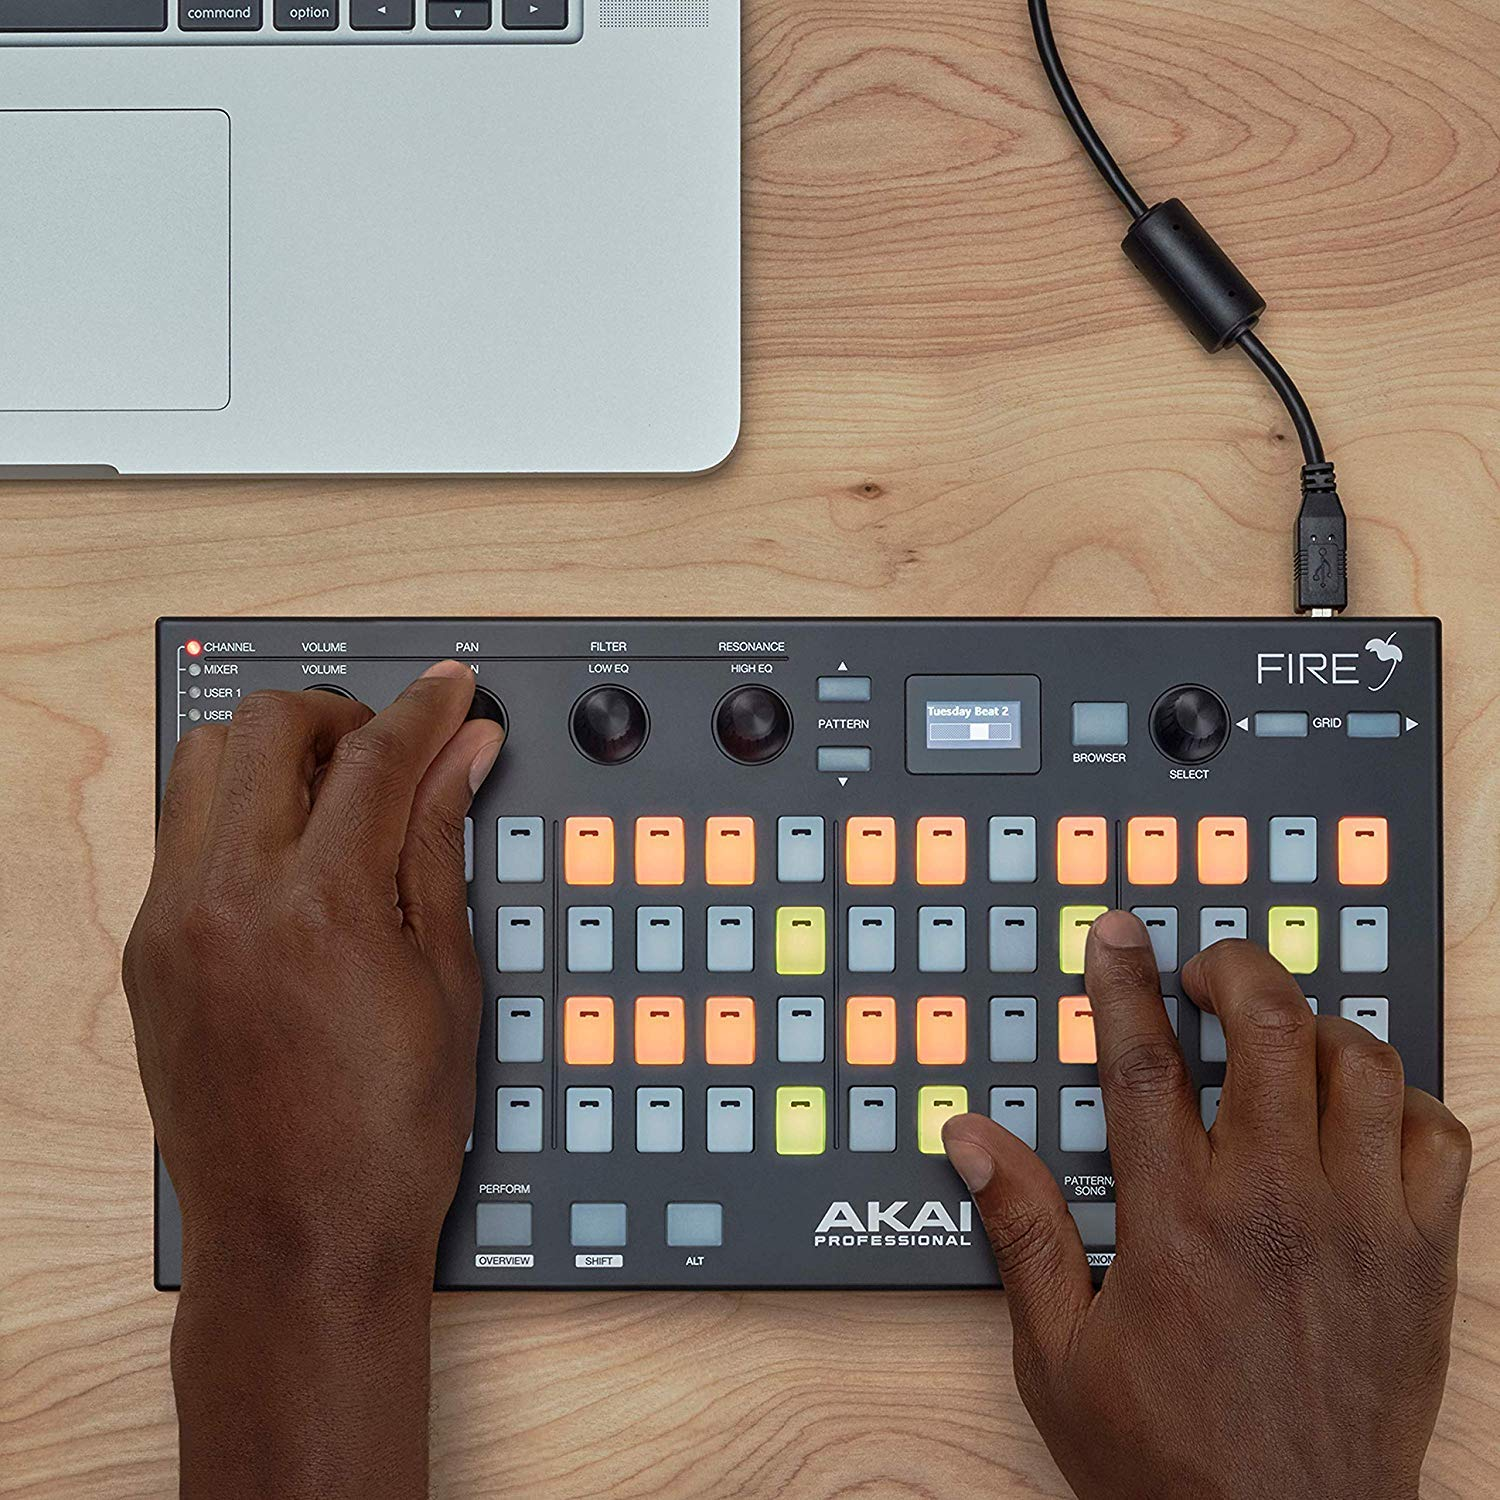 Akai Professional Fire | Performance Controller for FL Studio With 4 x 16 Velocity-Sensitive RGB Clip Matrix, OLED Display and FL Studio Fruity Fire Edition Included by Akai Professional (Image #2)